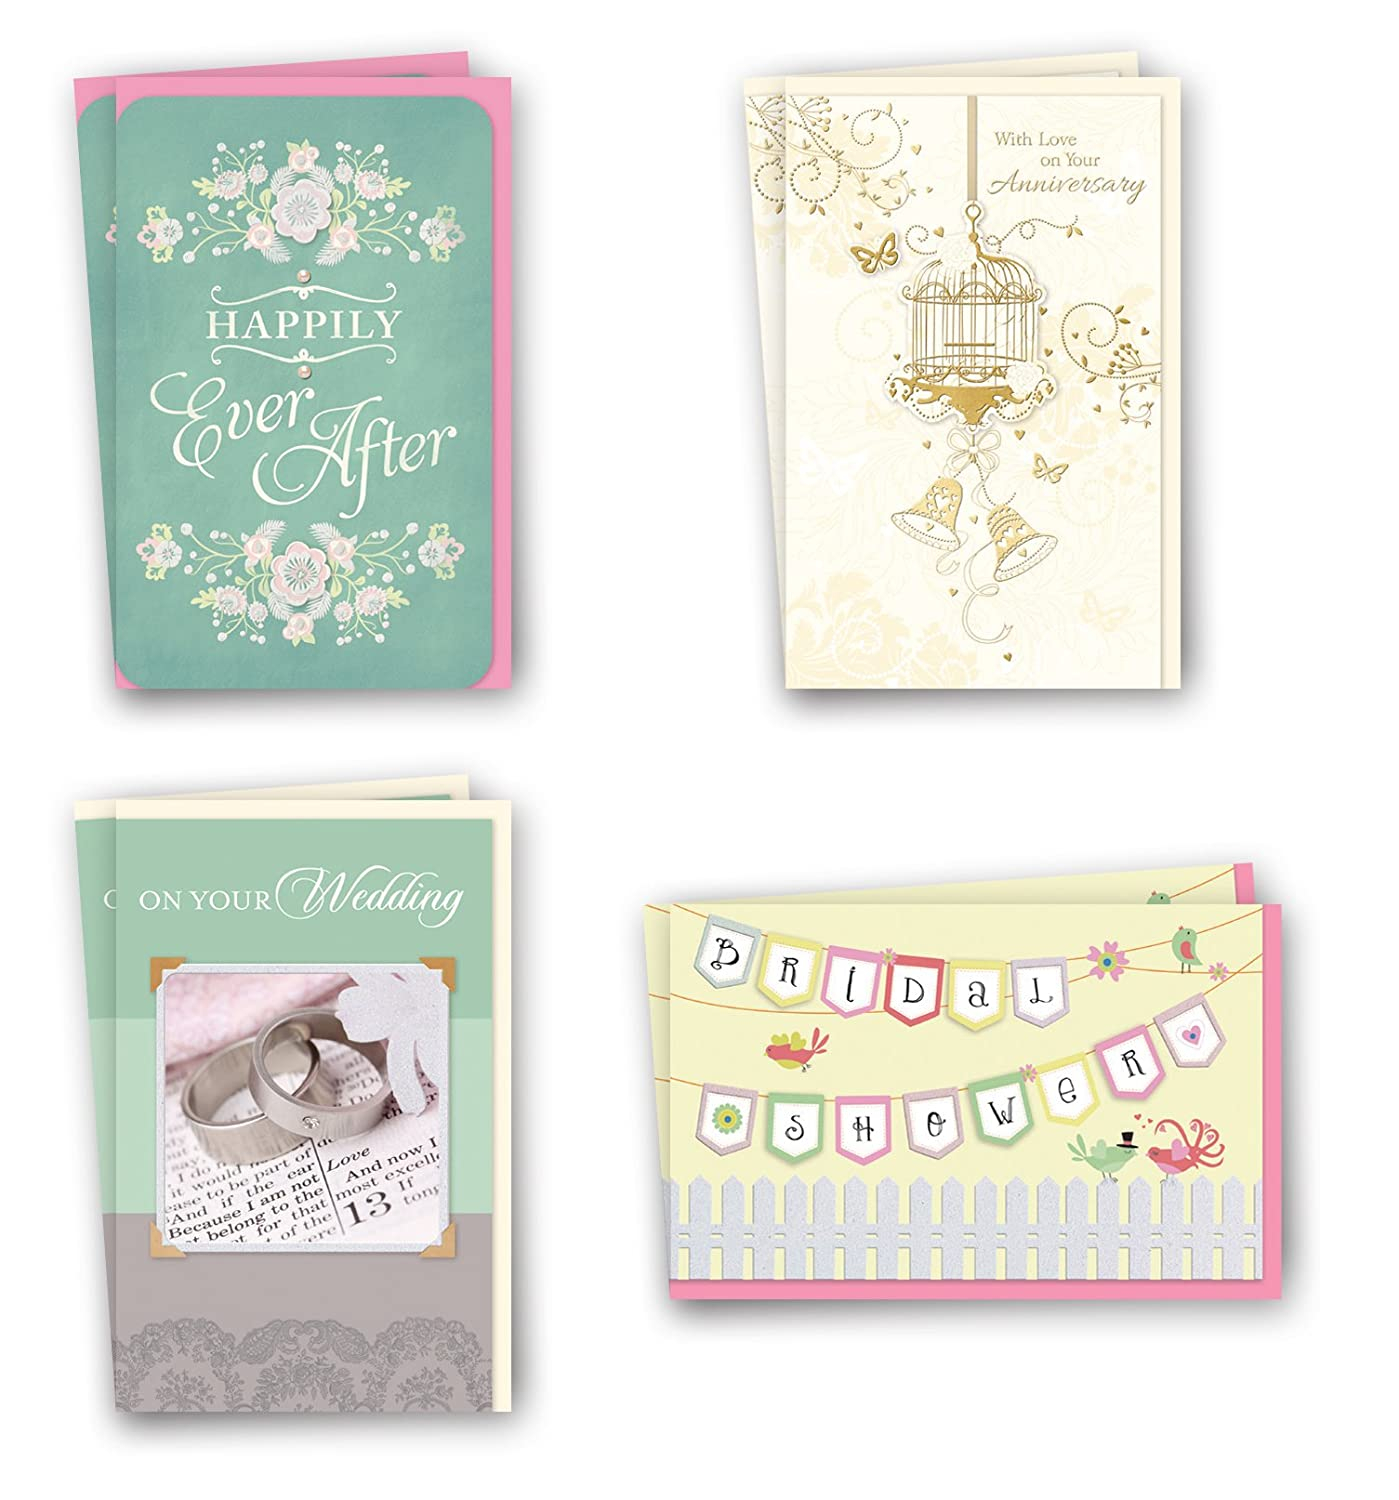 Amazon Assorted Wedding Cards Bulk Card Set of 8 Cards with